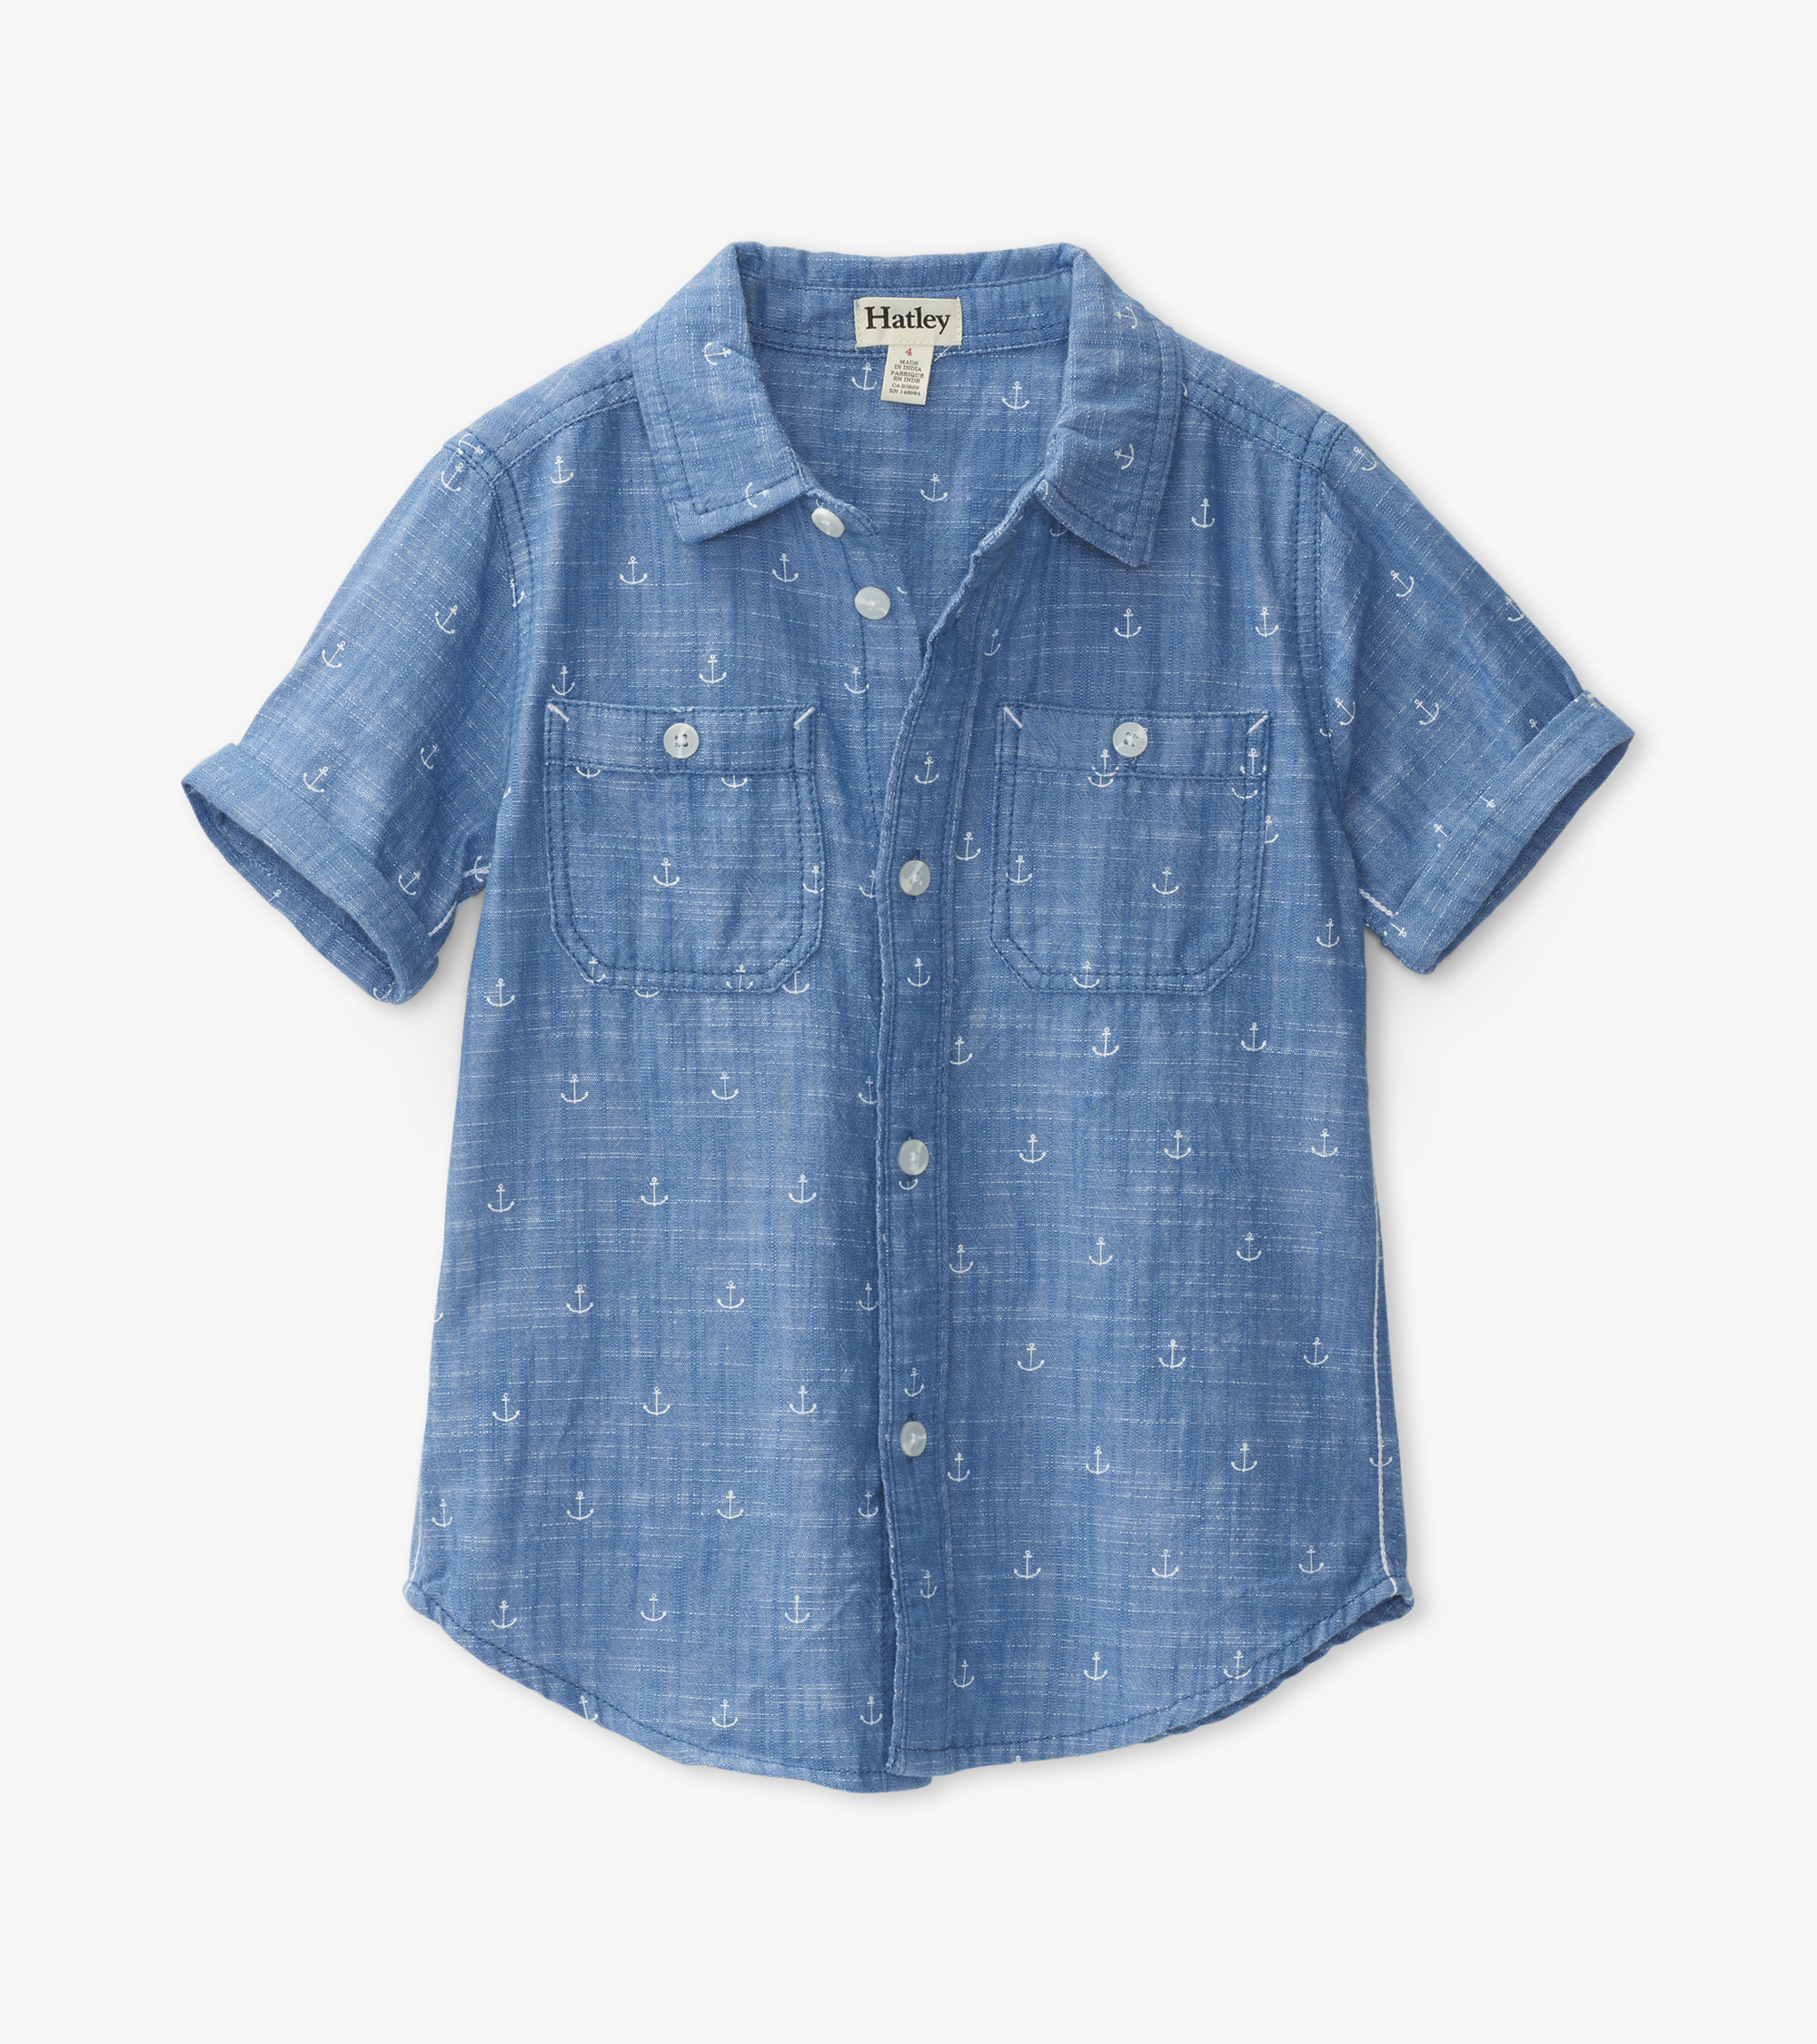 NOW £18 Hatley Chambray Anchors Shirt